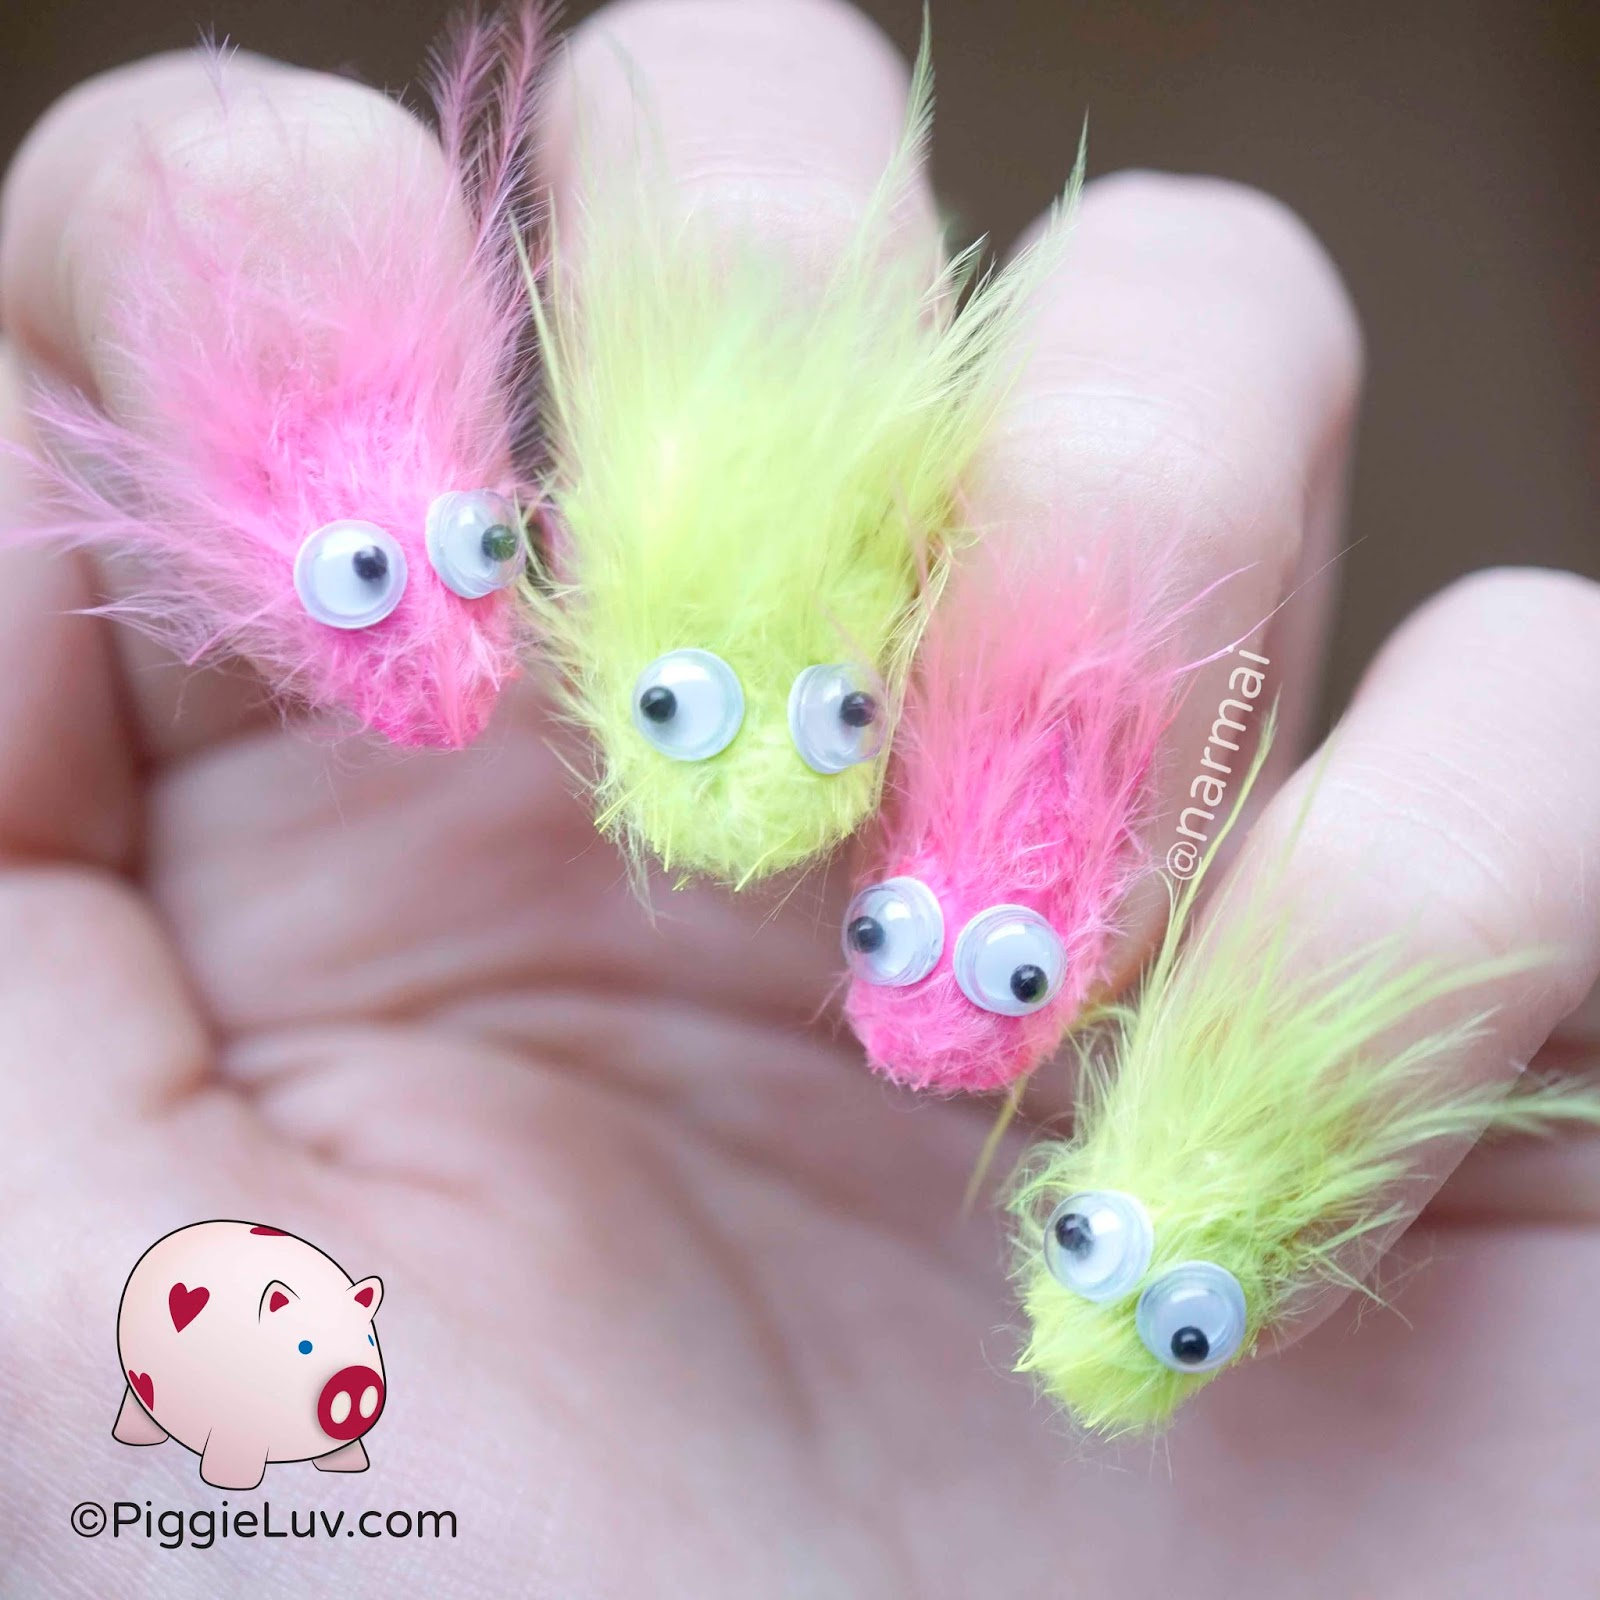 Piggieluv Furry Monsters Nail Art For Fun